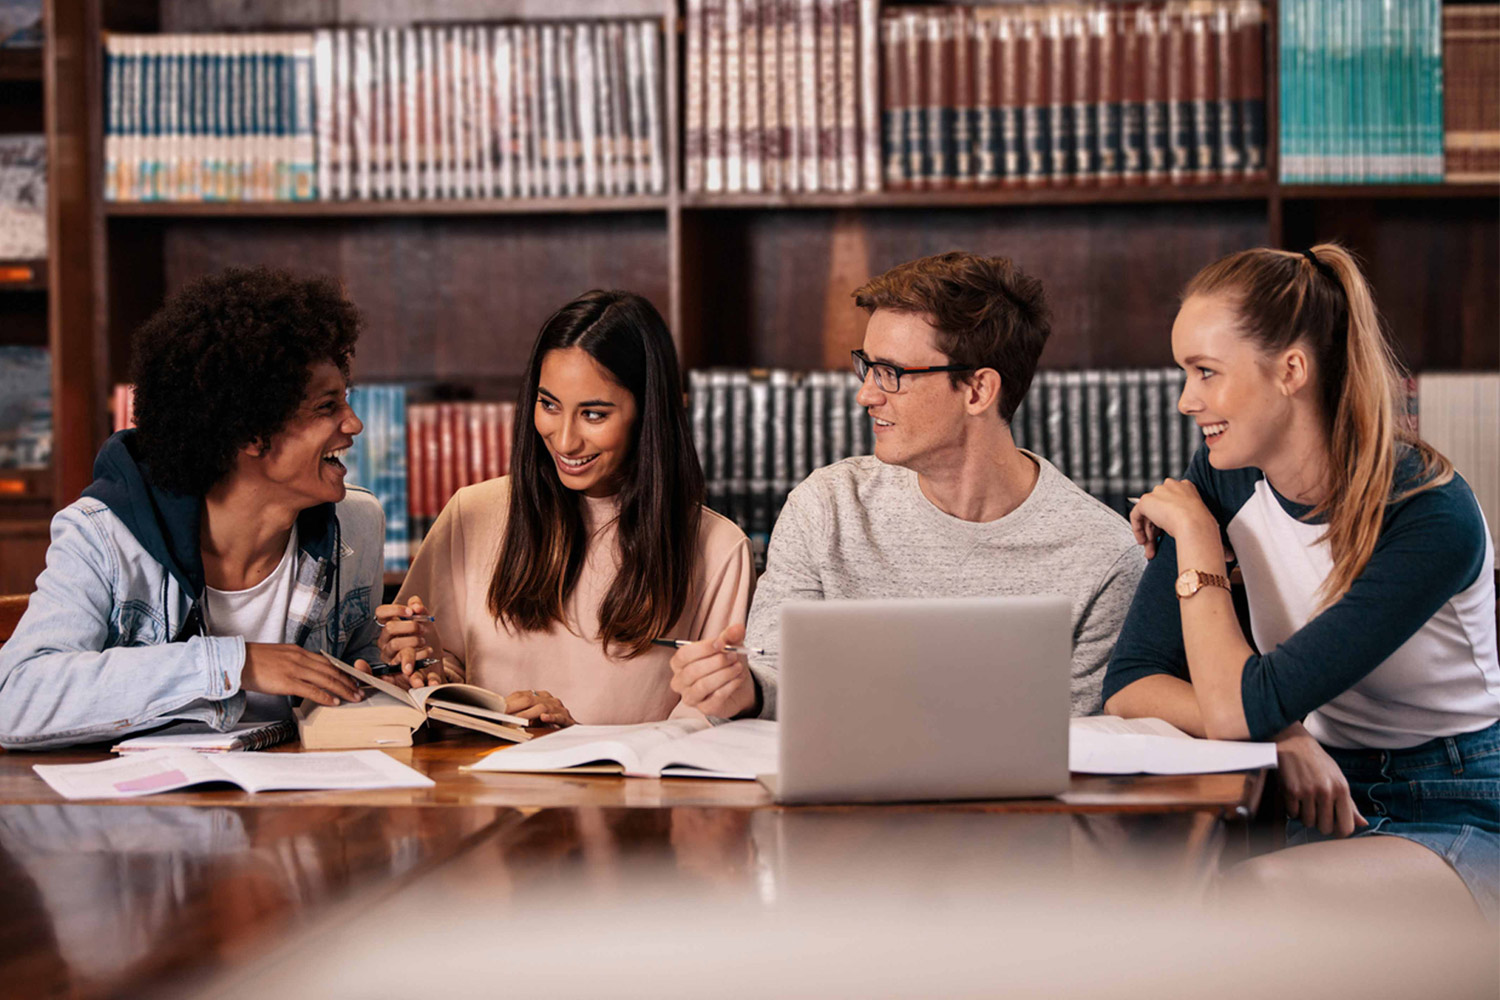 Online Resources that can Make Student Life a Little Bit Easier